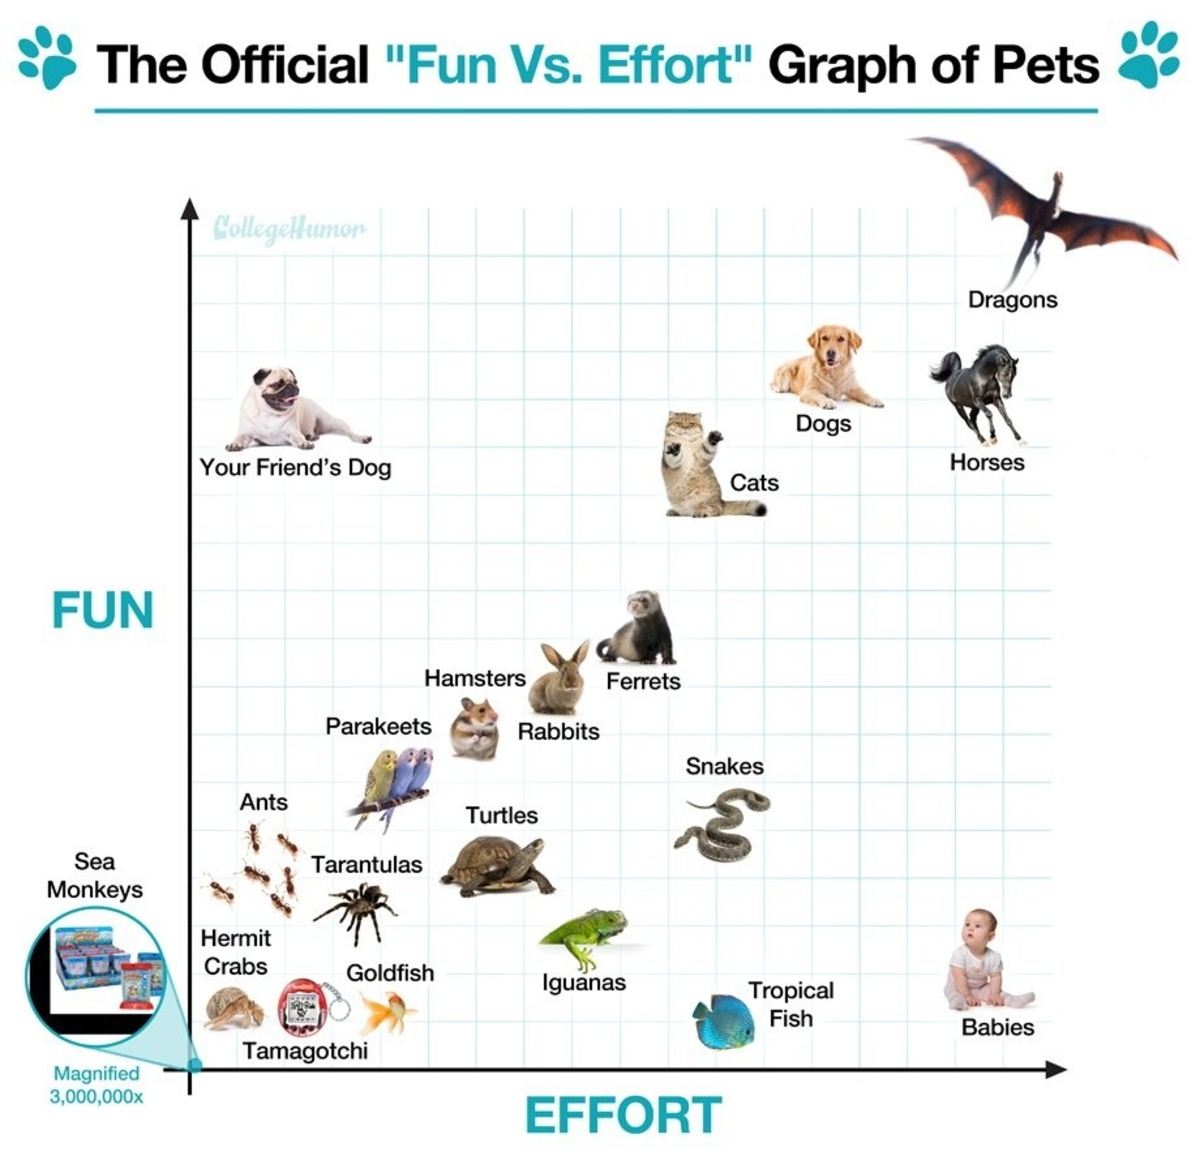 'Fun vs. Effort' roughly translates to rewards vs. the amount of care one puts into their pet.